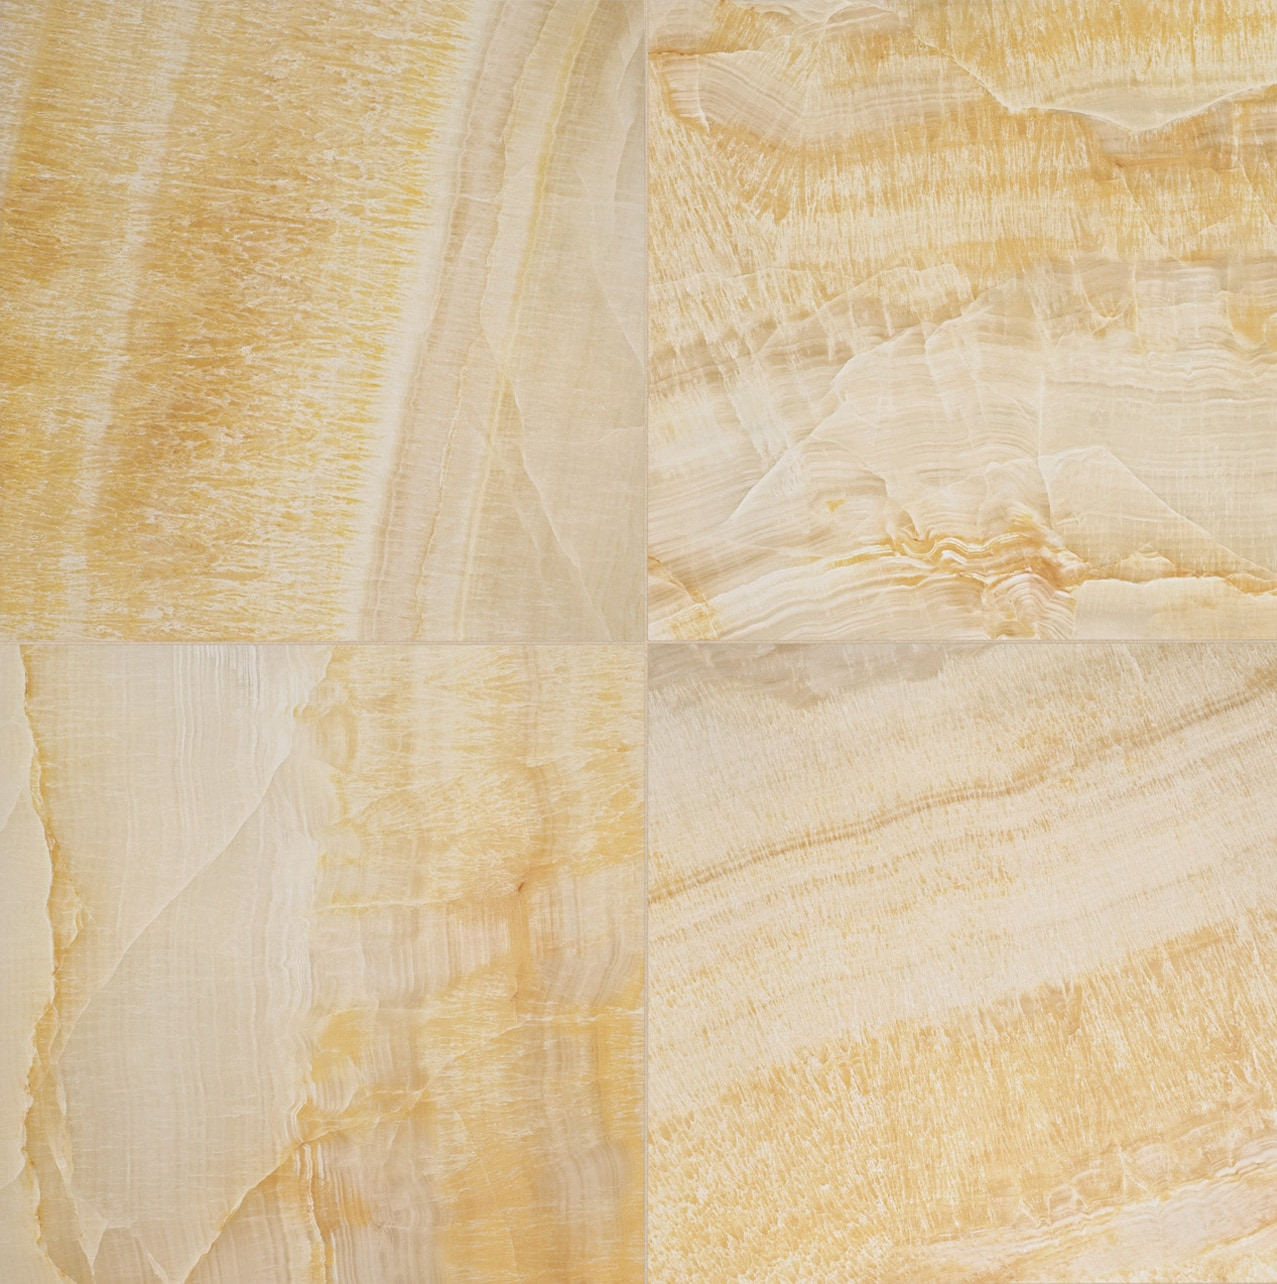 Versace Marble Oro poliert 58-5x117-5 cm 0240062D-